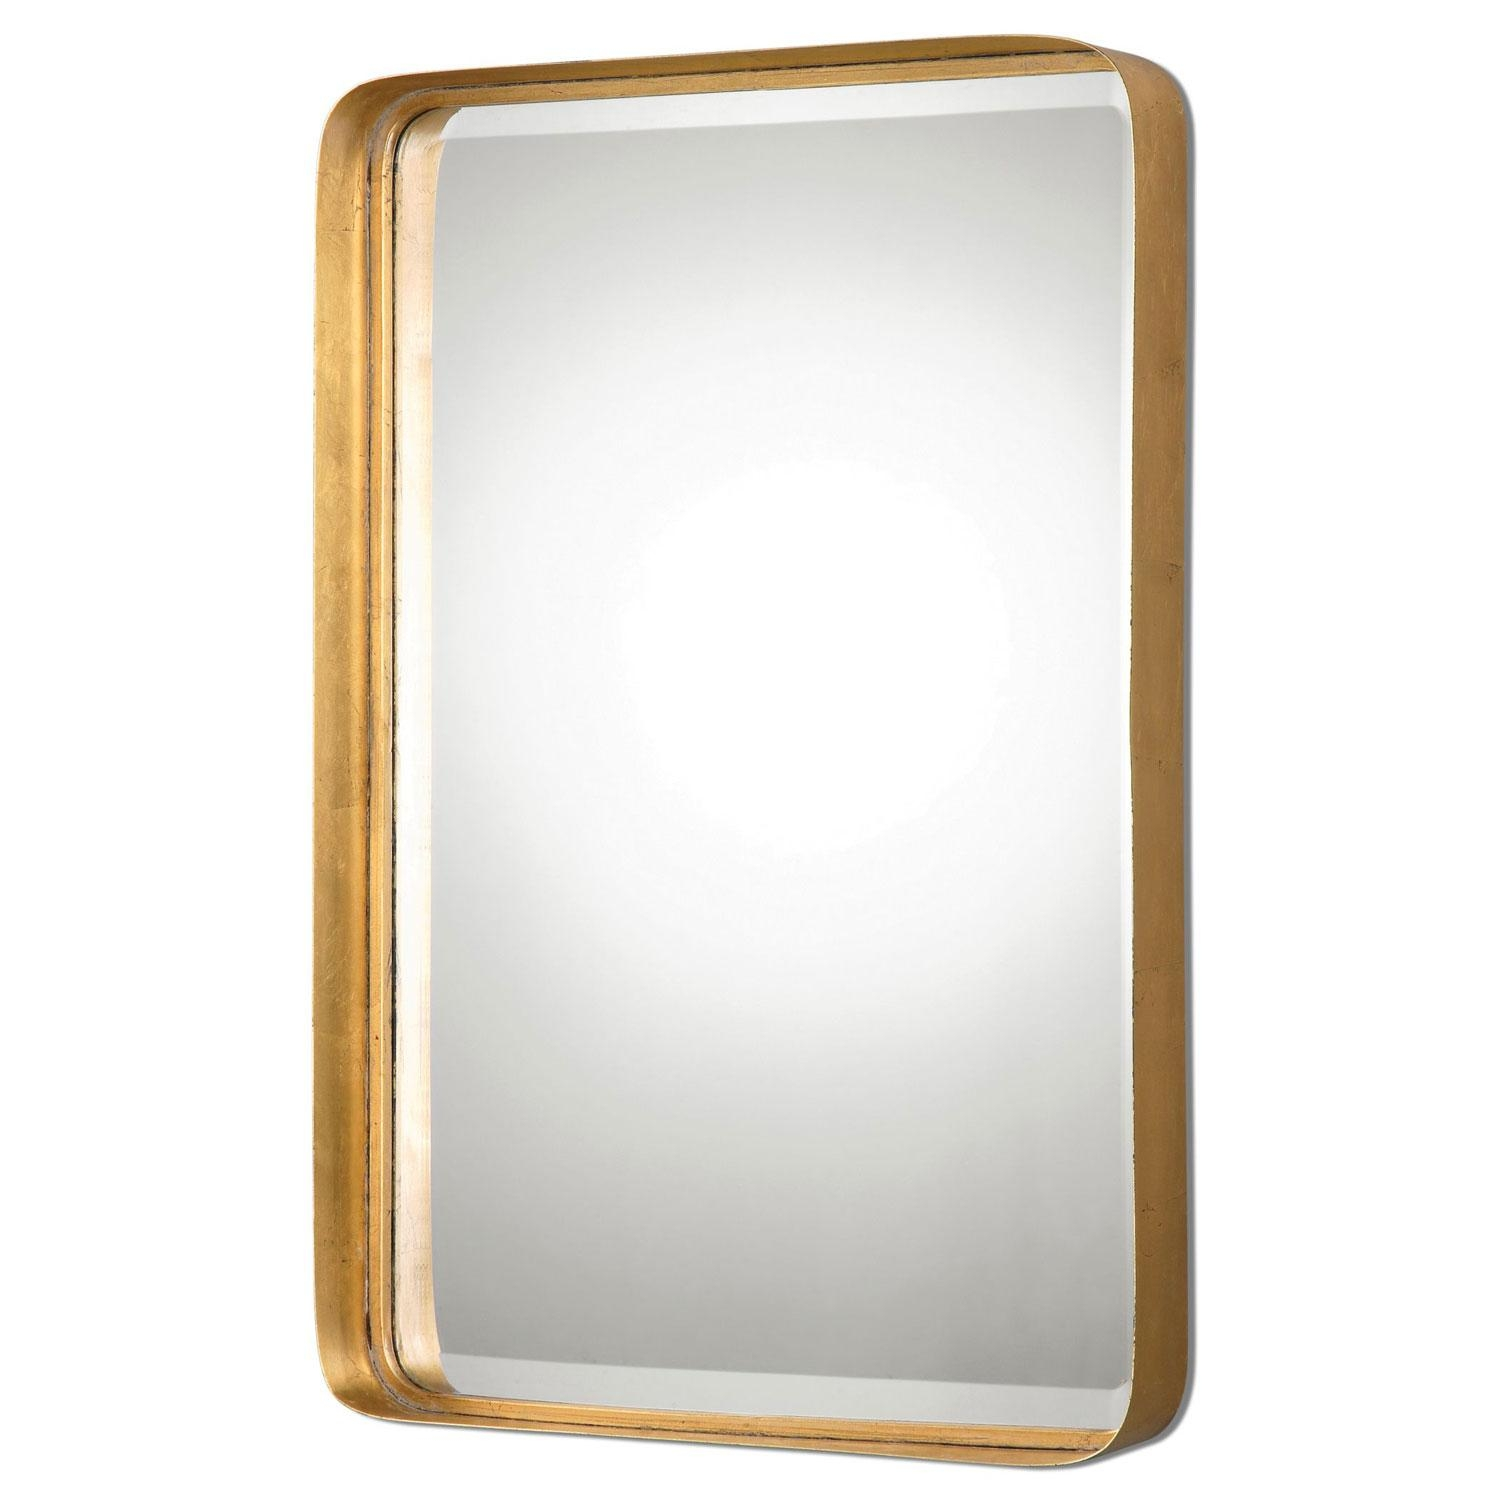 Crofton Antique Gold Mirror Uttermost Wall Mirror Mirrors Home Decor With Gold Wall Mirrors (Image 3 of 20)